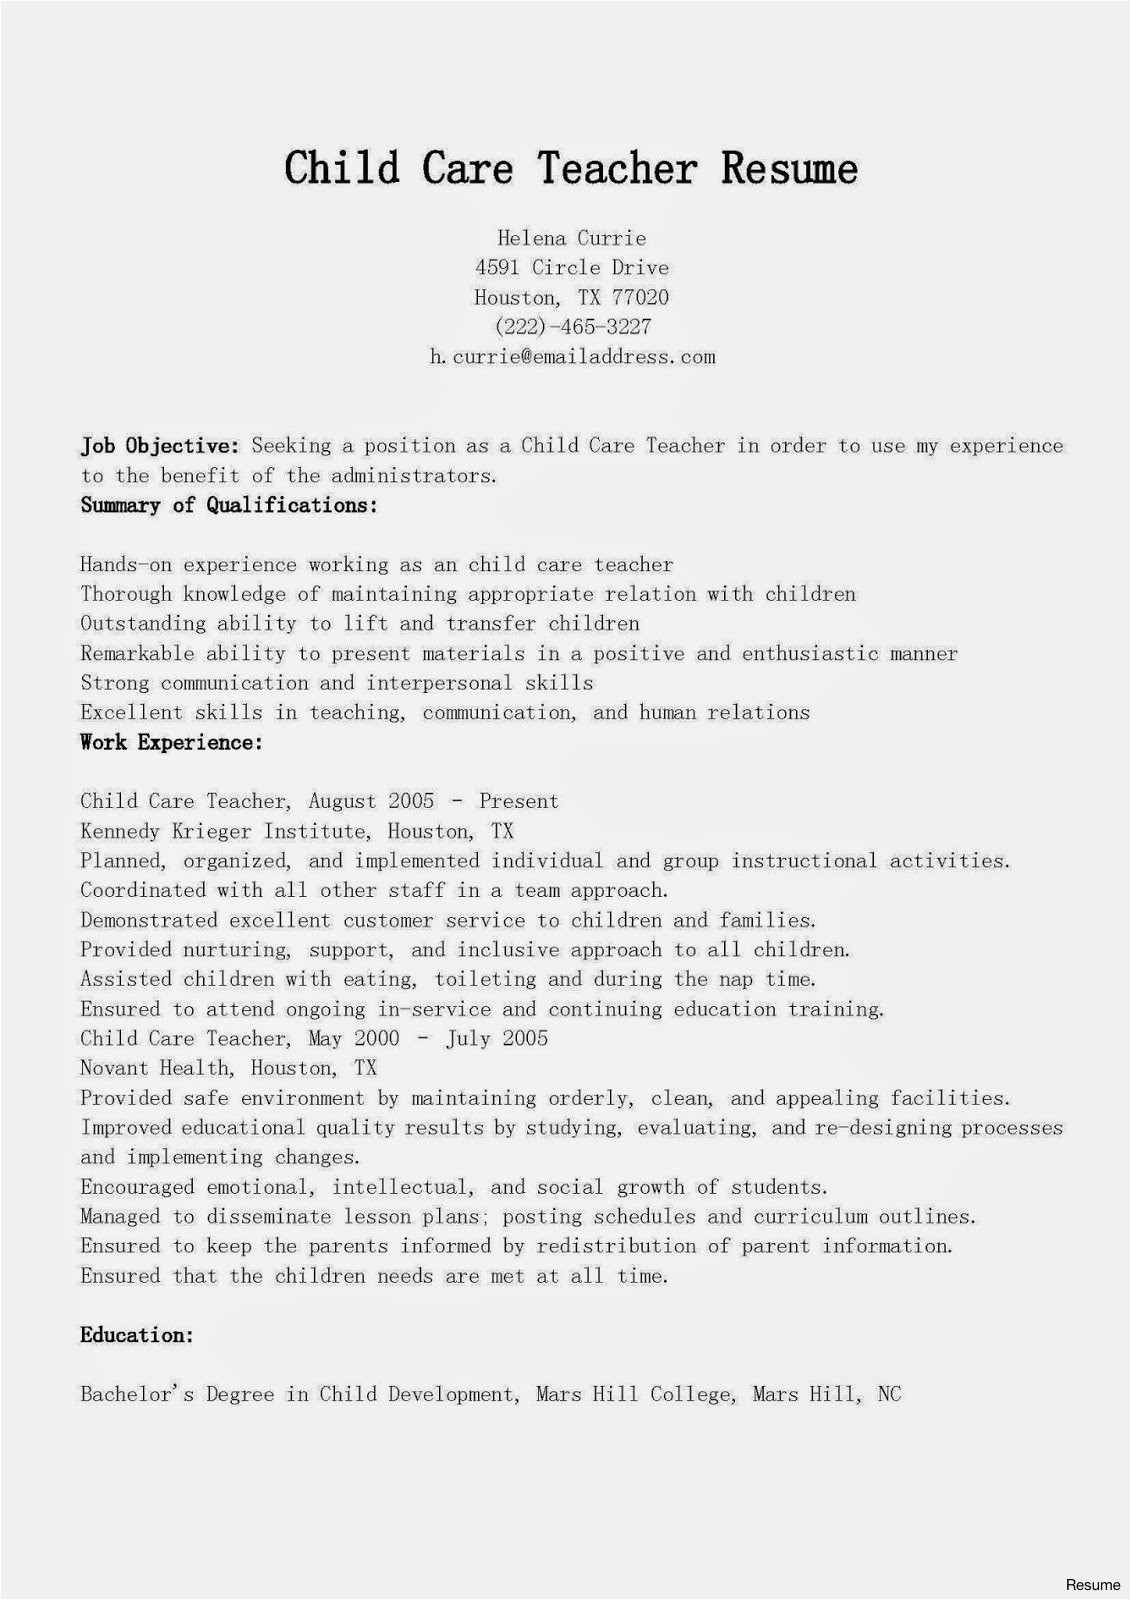 Sample Resume for Child Care Worker with No Experience 10 Resume for Child Care Jobs Proposal Resume